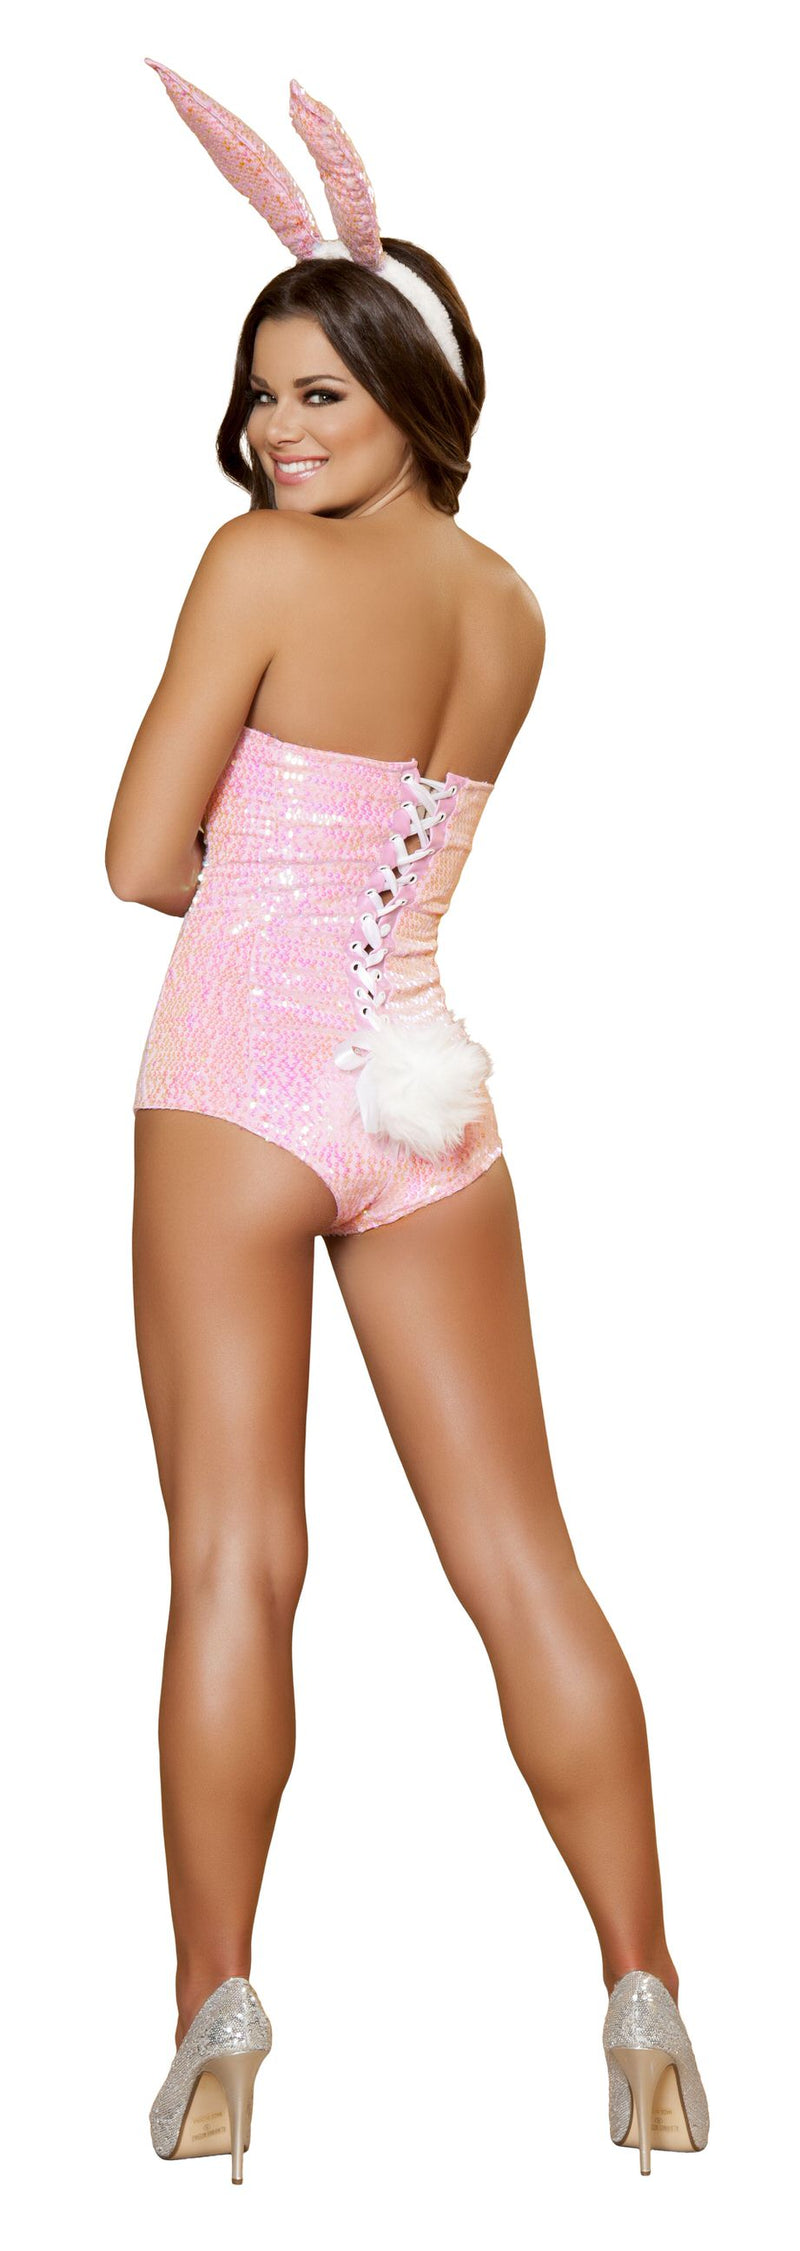 2 Piece Bunny Light Pink Sequin Romper & Ears Party Costume - Fest Threads